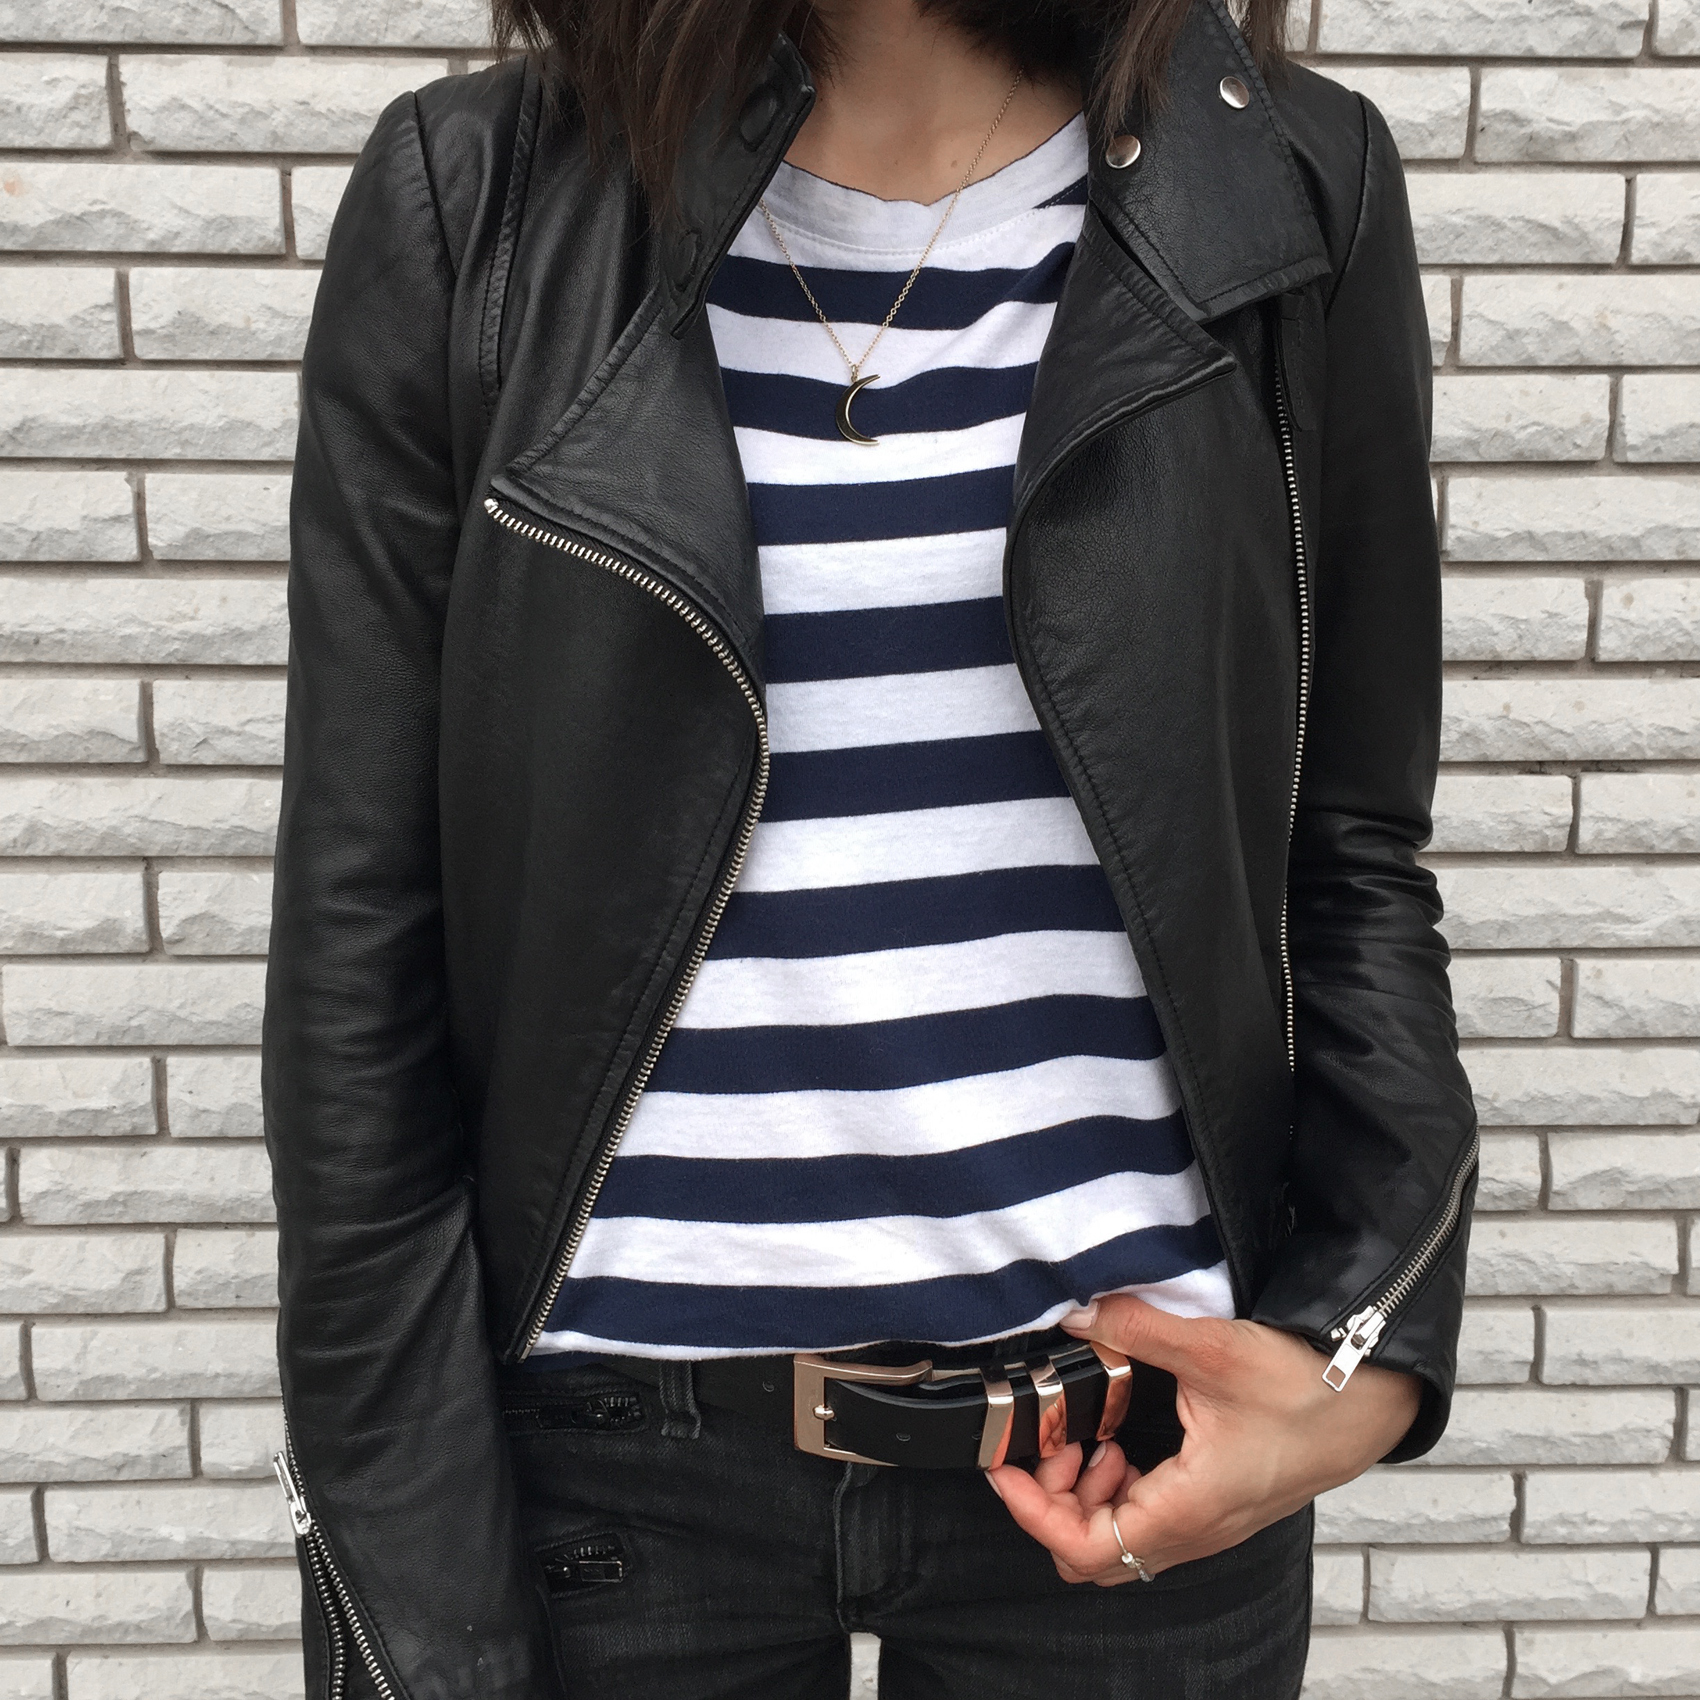 WoahStyle.com_Upper Canada Mall Gorgeous Magazine_Rag and Bone jeans_Mackage leather jacket_Kate Bosworth Matisse Star Boots_YSL Saint Laurent Nano Sac De Jour_Striped Tshirt_OOTD_StreetStyle_Luxe_5190.jpg